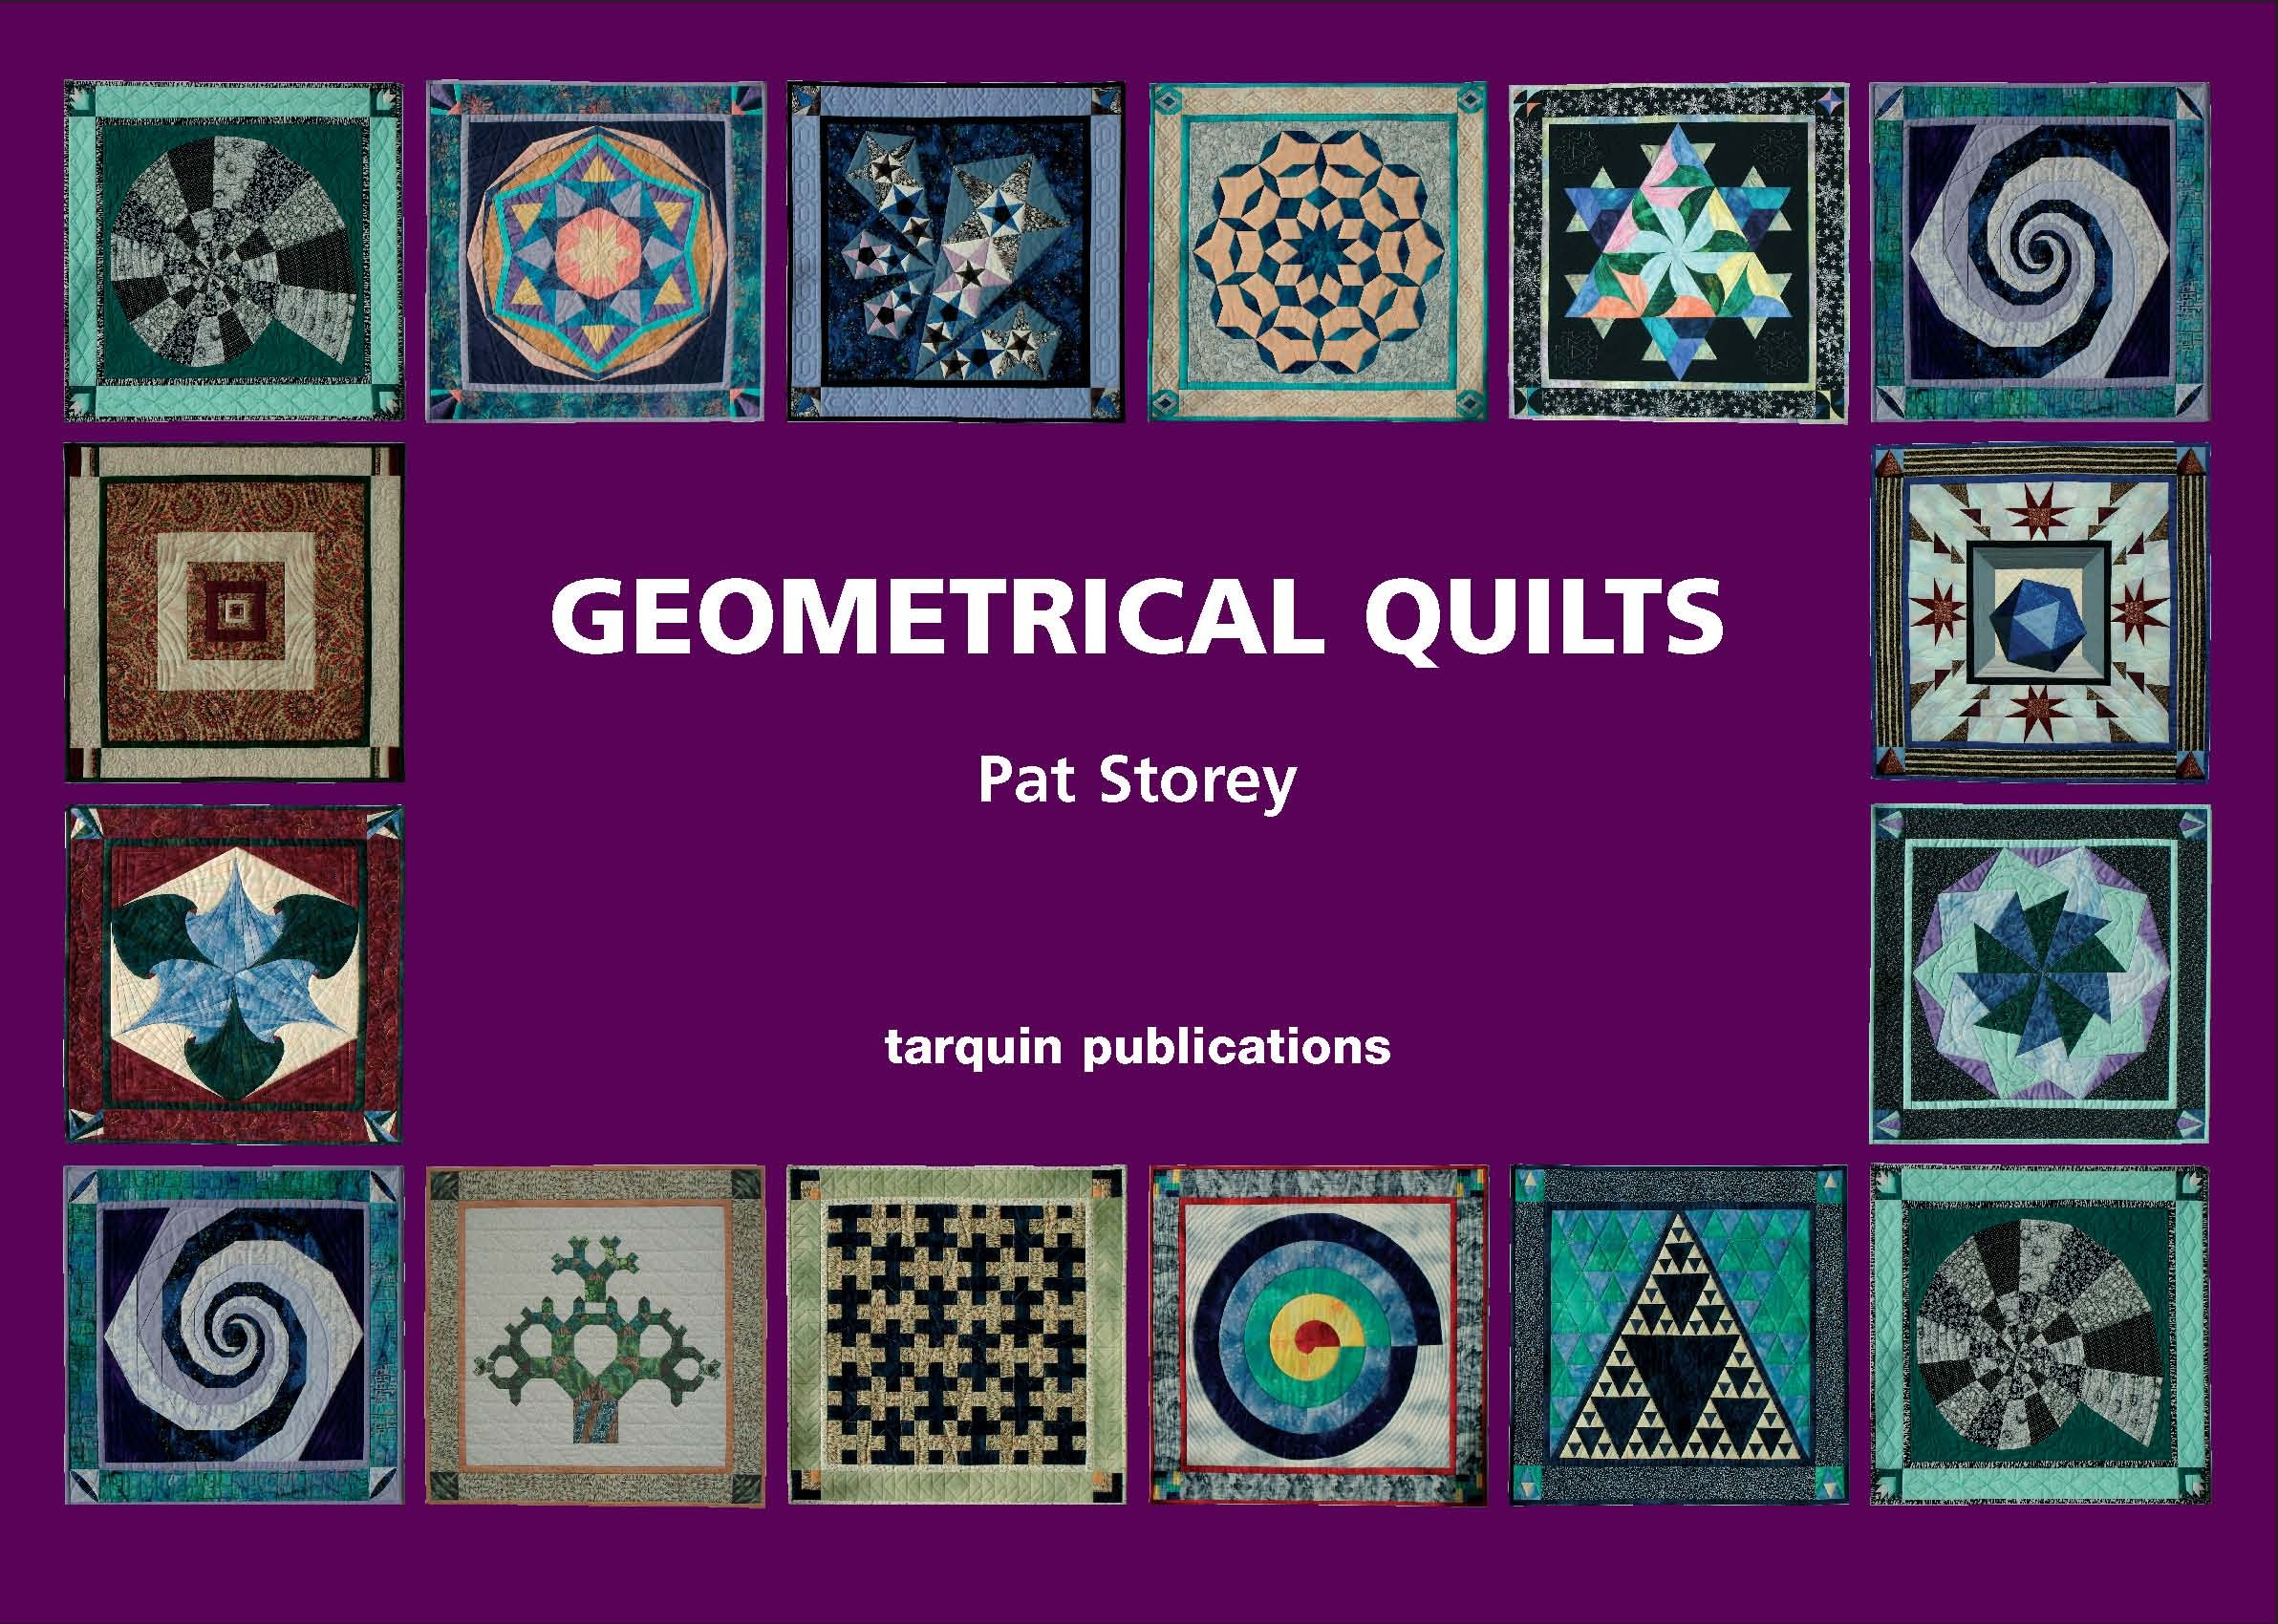 Geometrical Quilts